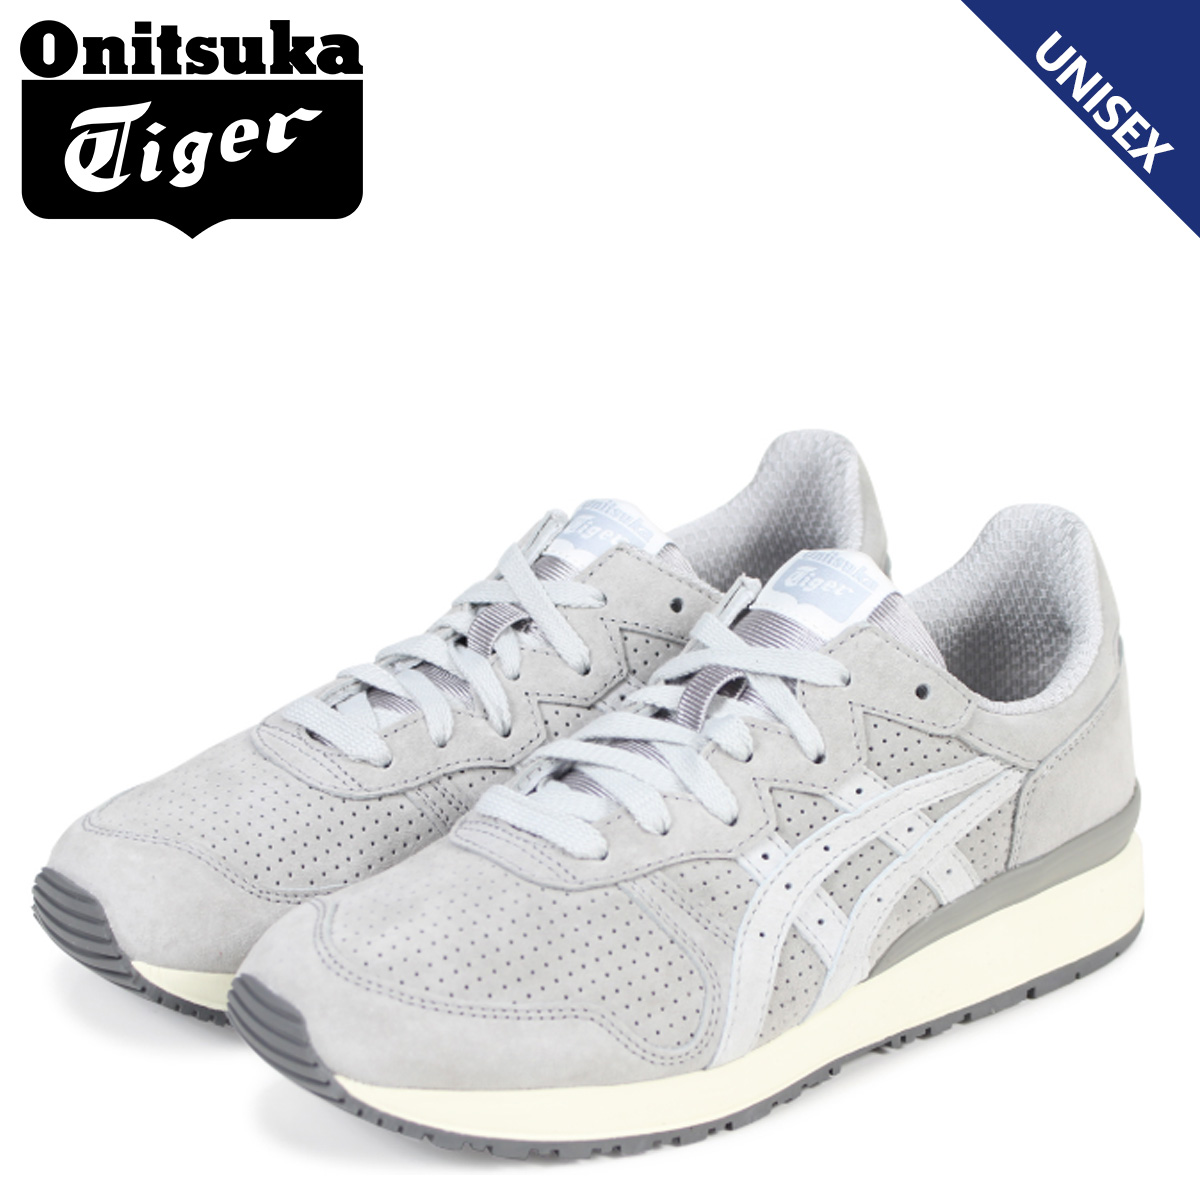 brand new f6602 6c837 Onitsuka Tiger tiger Alley Onitsuka tiger TIGER ALLY men gap Dis sneakers  D701L-9696 TH701L-9696 gray [the 8/1 additional arrival]